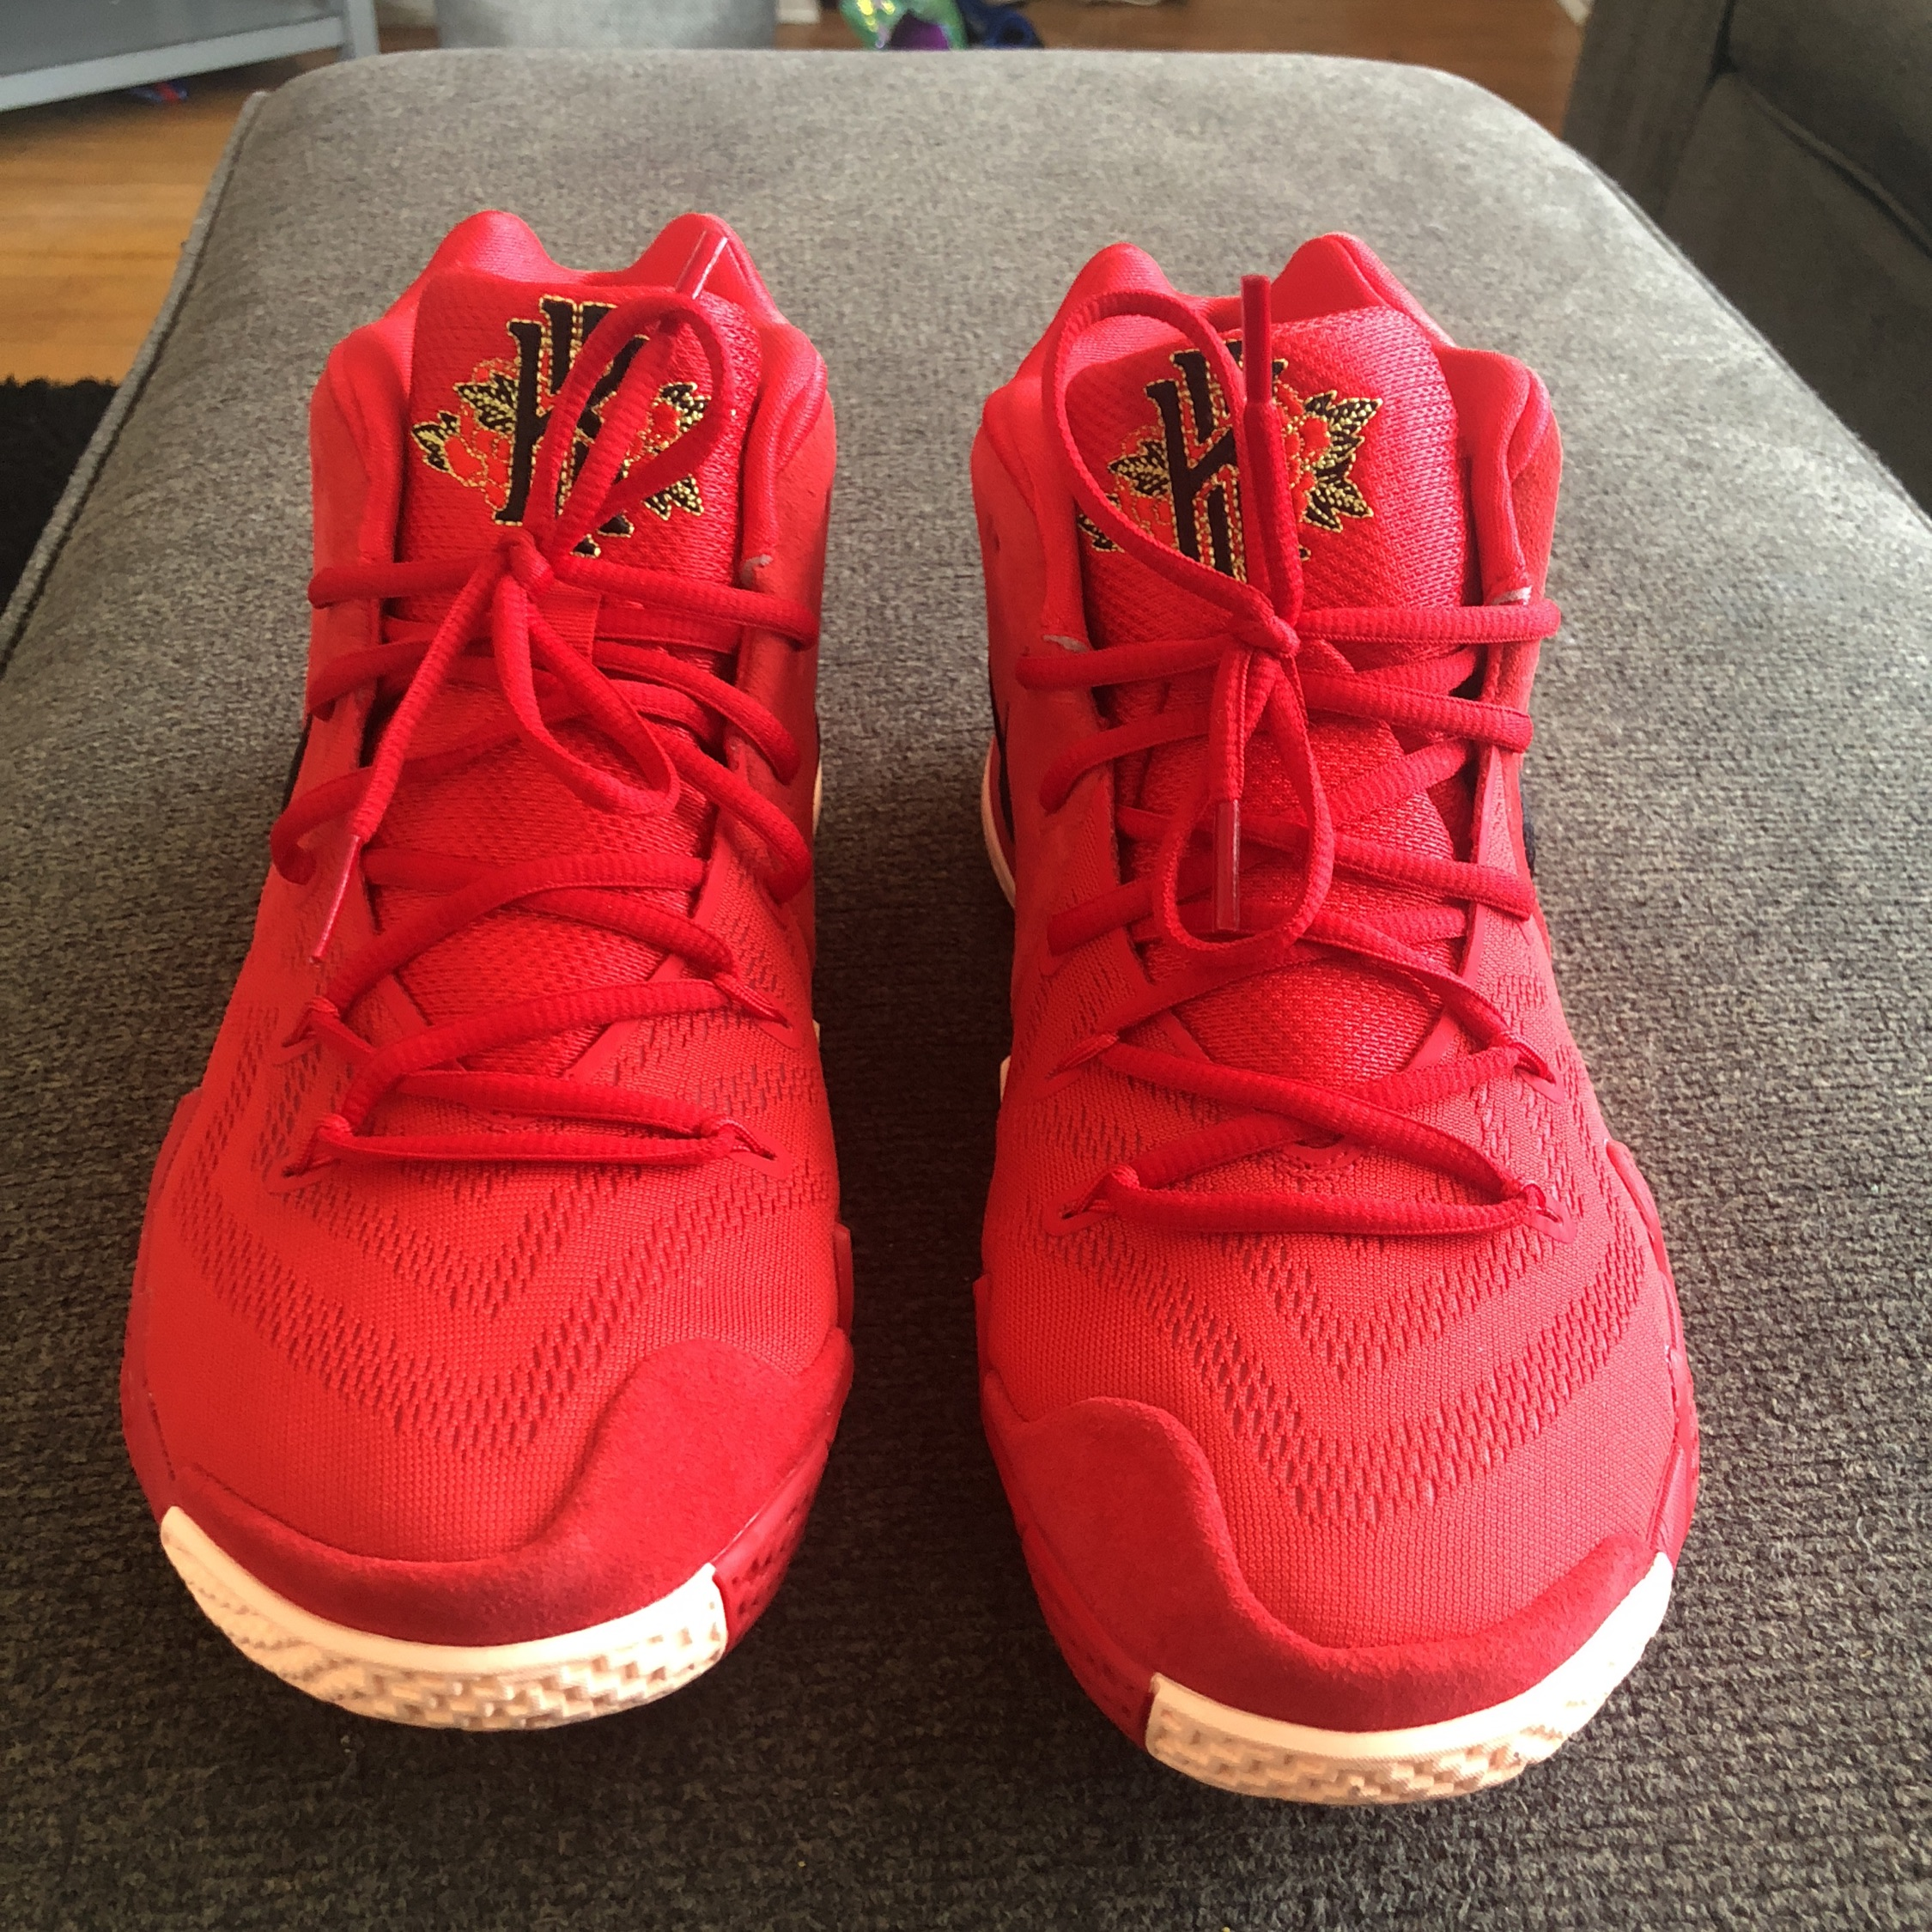 los angeles a0b99 39759 Kyrie 4 Chinese New Year (Ep) Sz 10